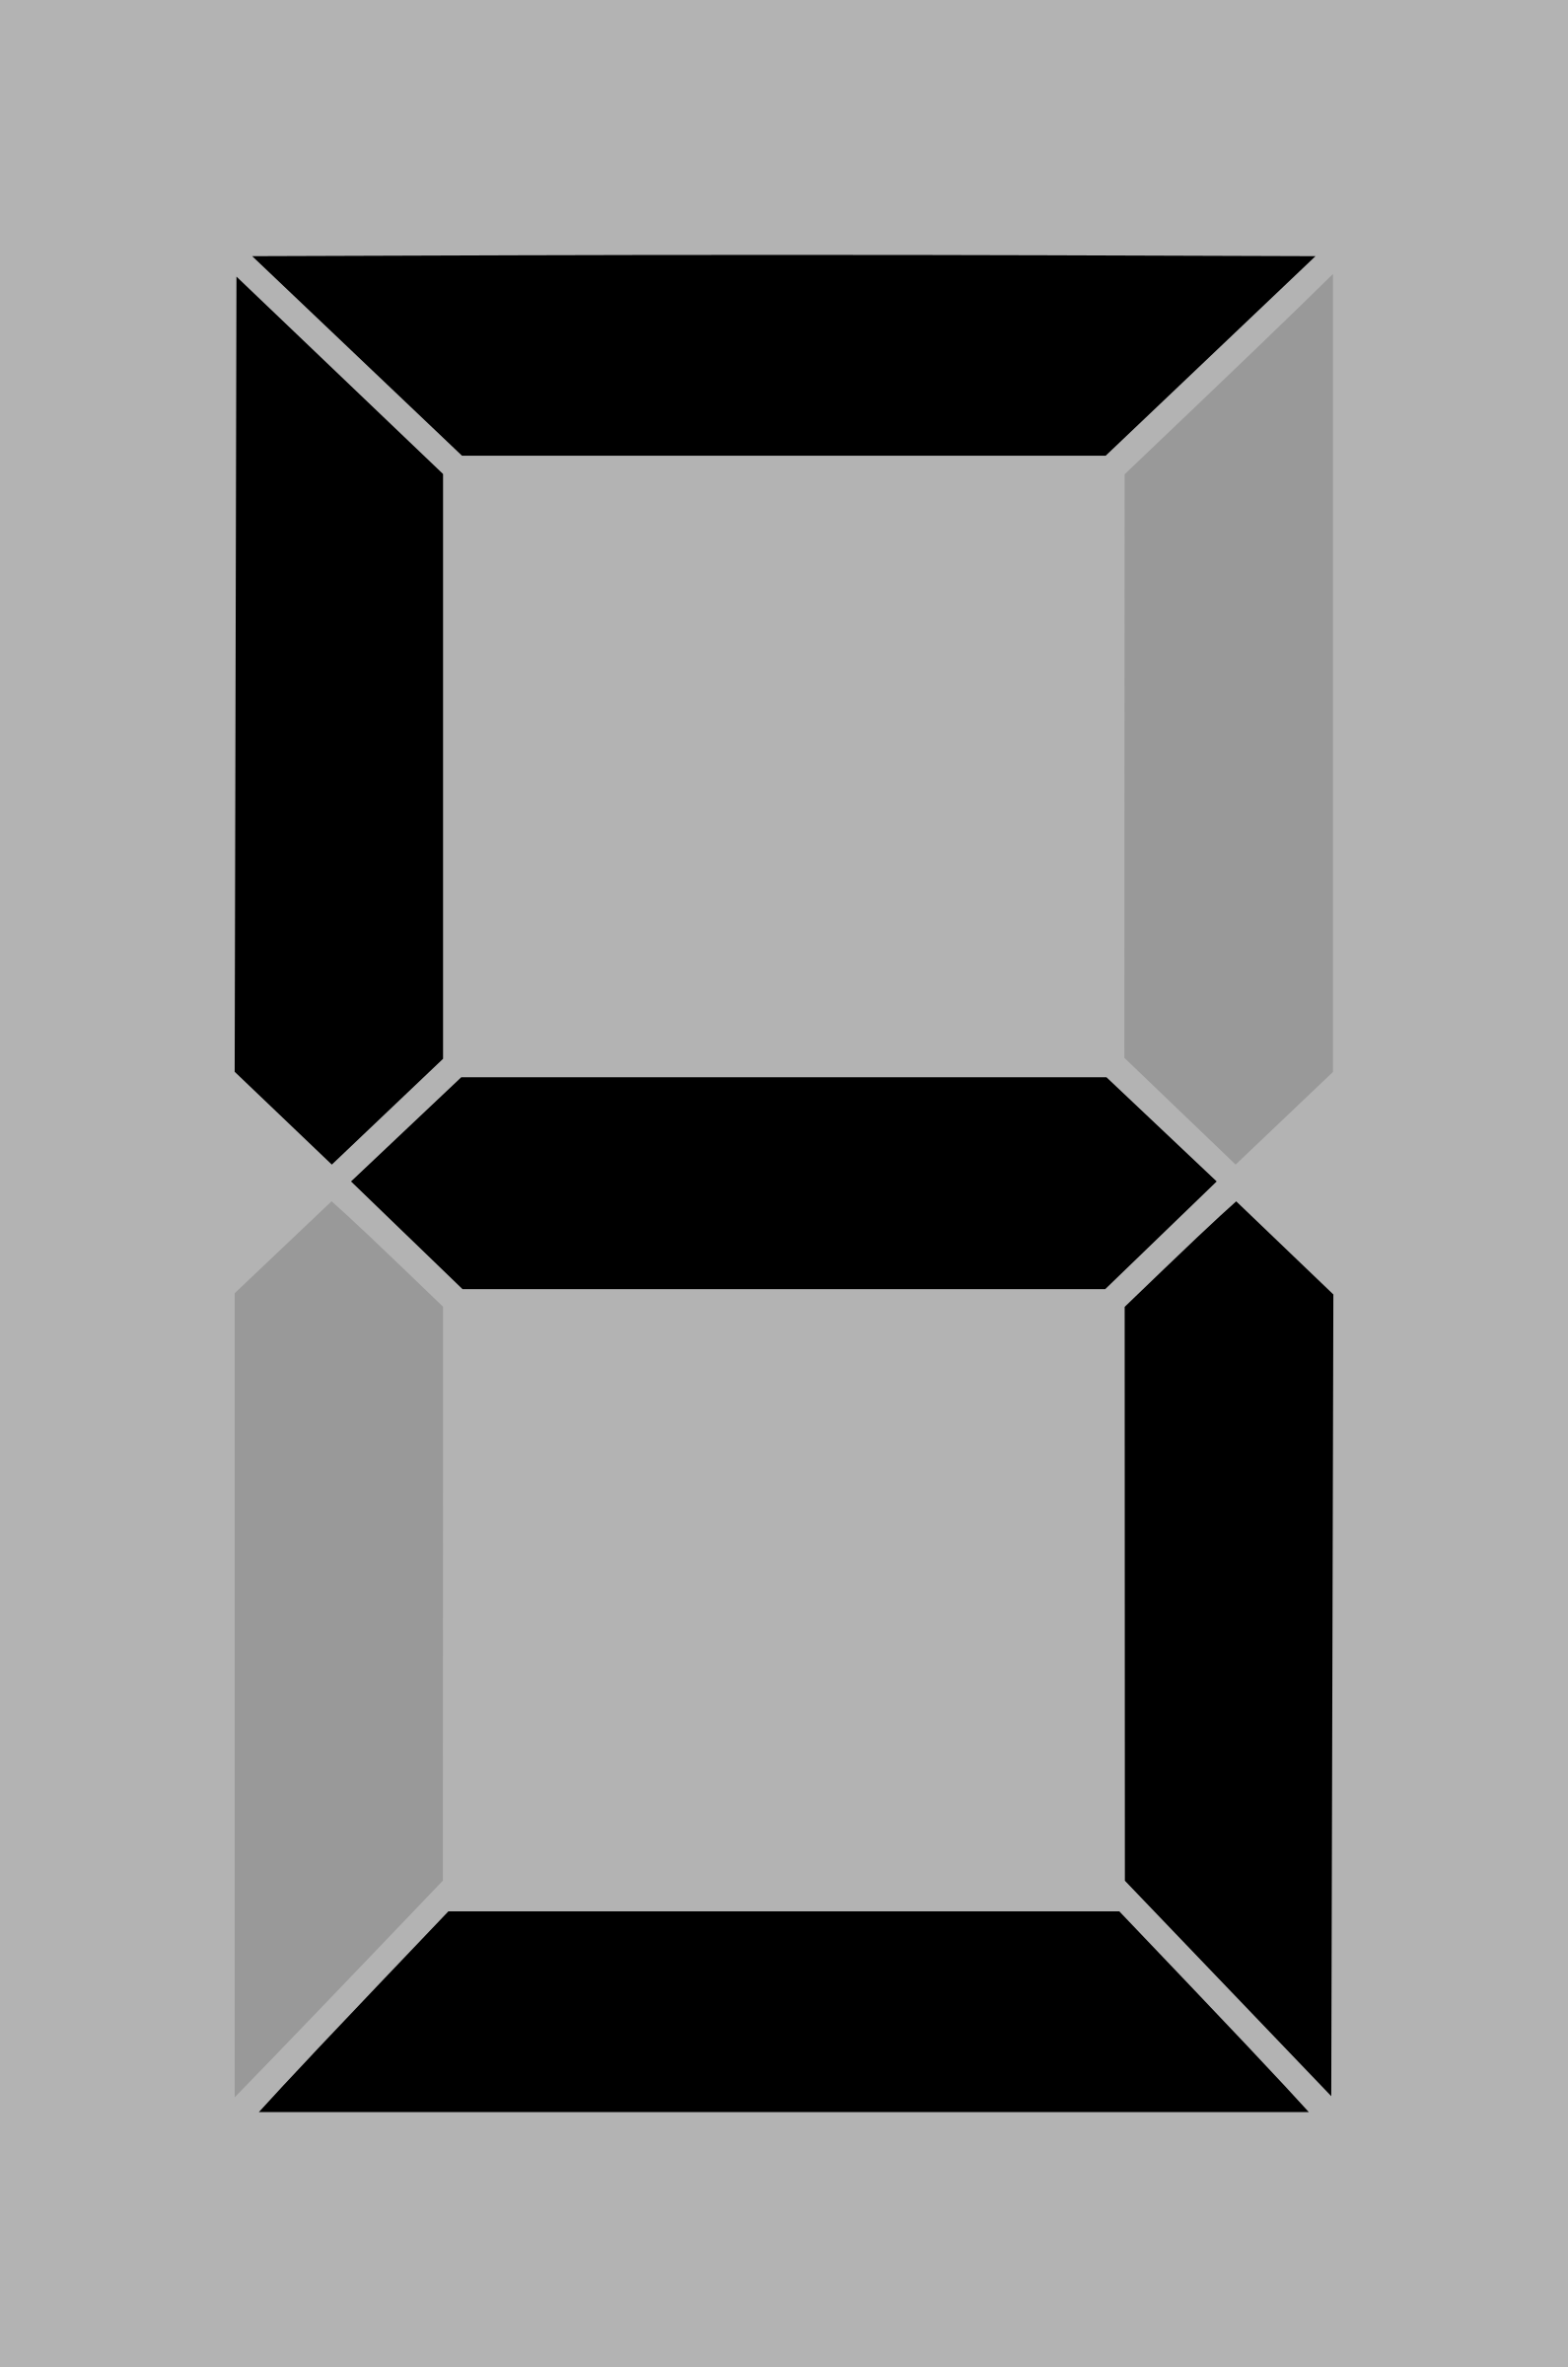 Seven segment display gray 5 by alex8664